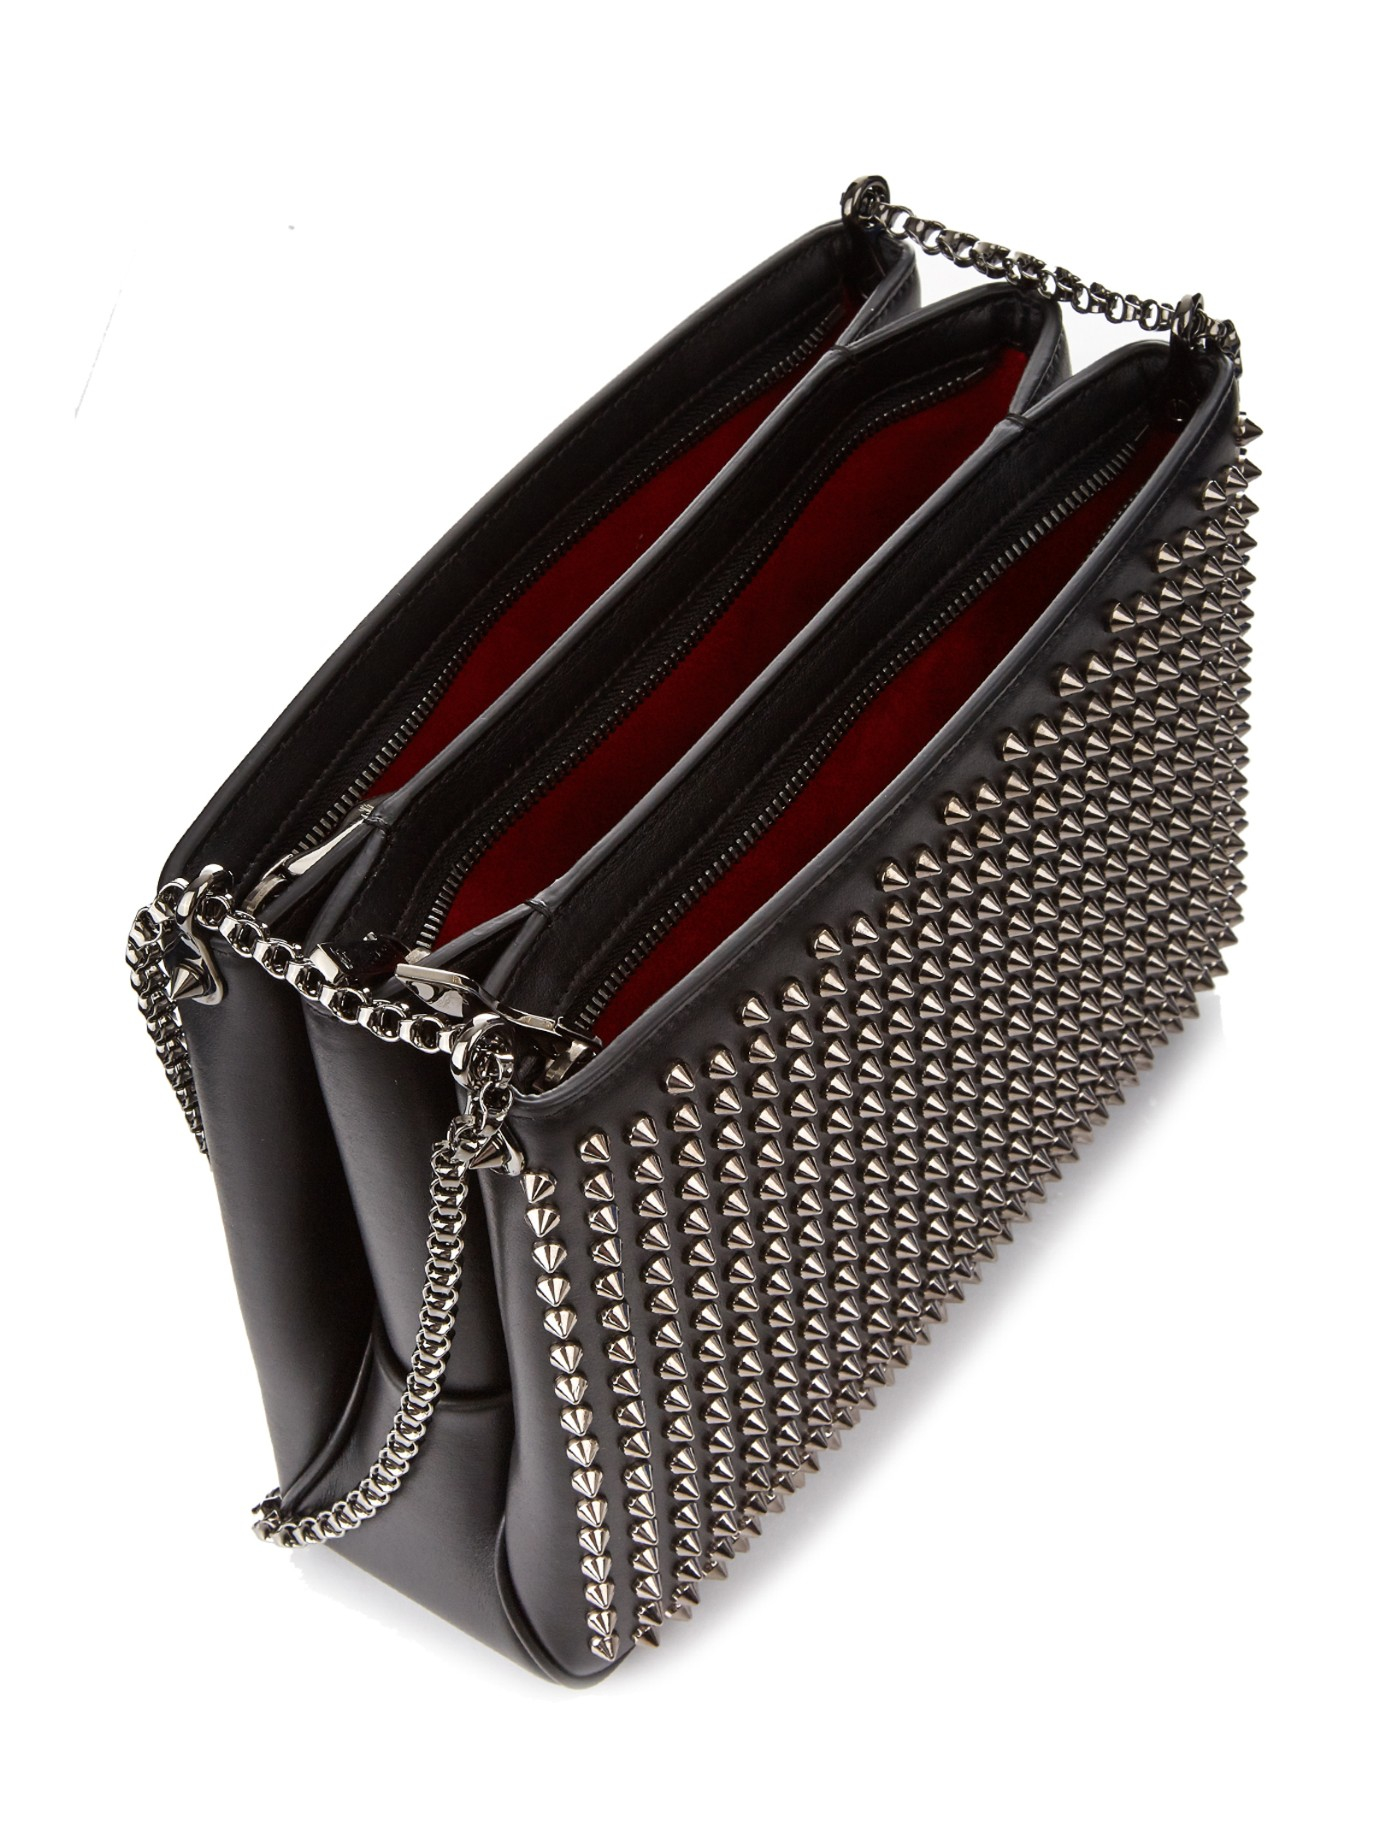 f1006e217d6 Christian Louboutin Black Triloubi Large Spiked Leather Shoulder Bag